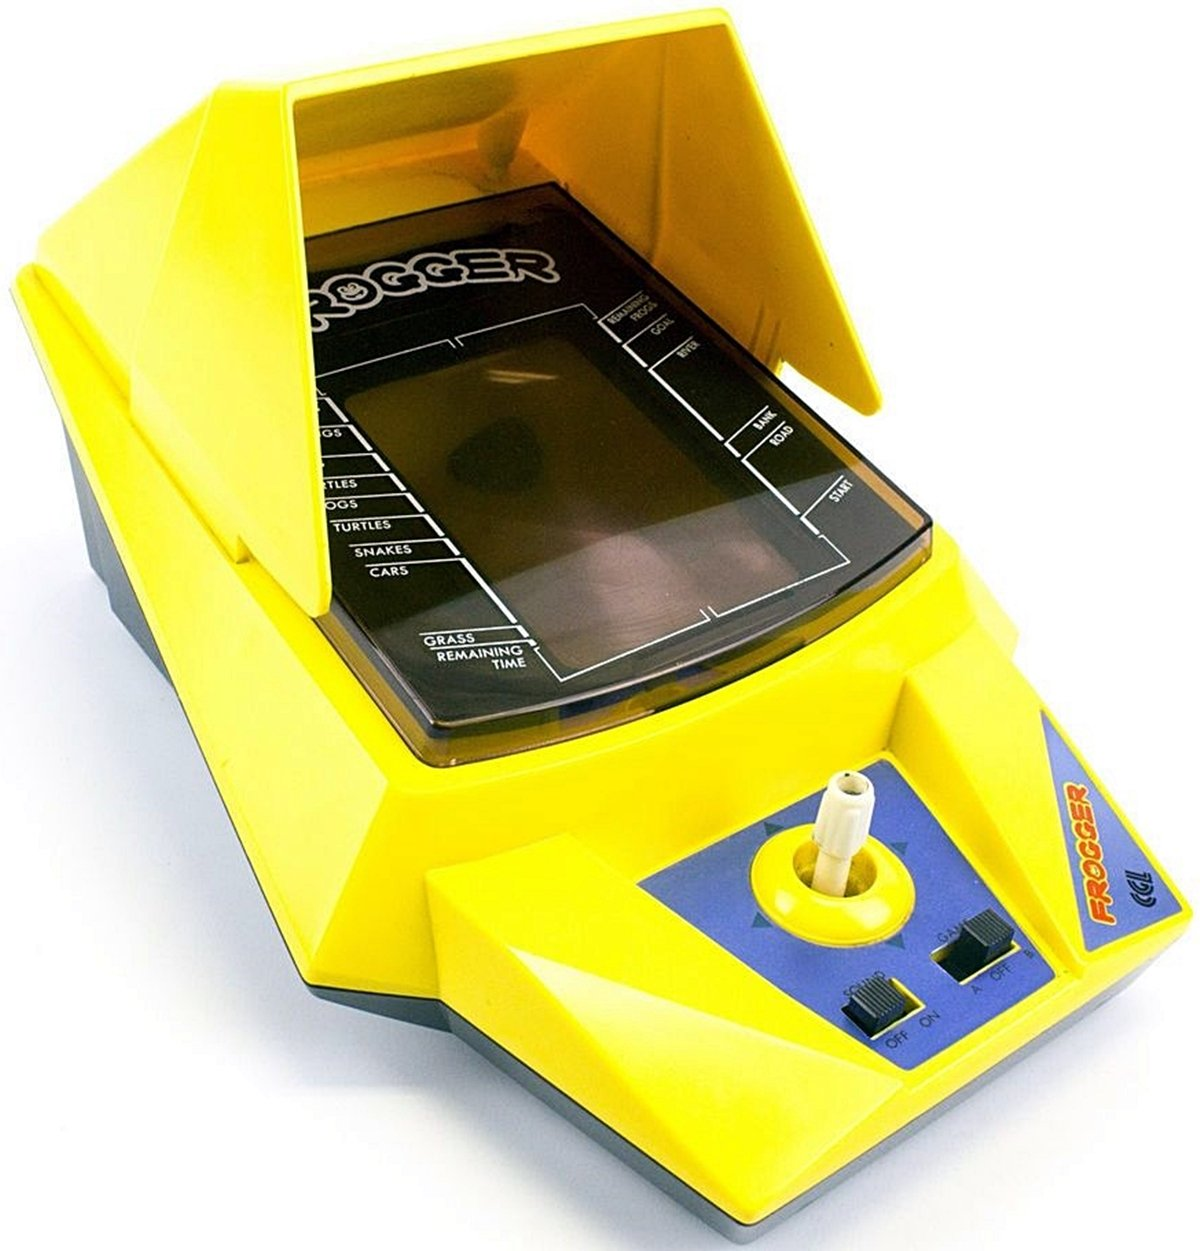 CGL2 12 Of The Best Handheld Electronic Games From The 1980s